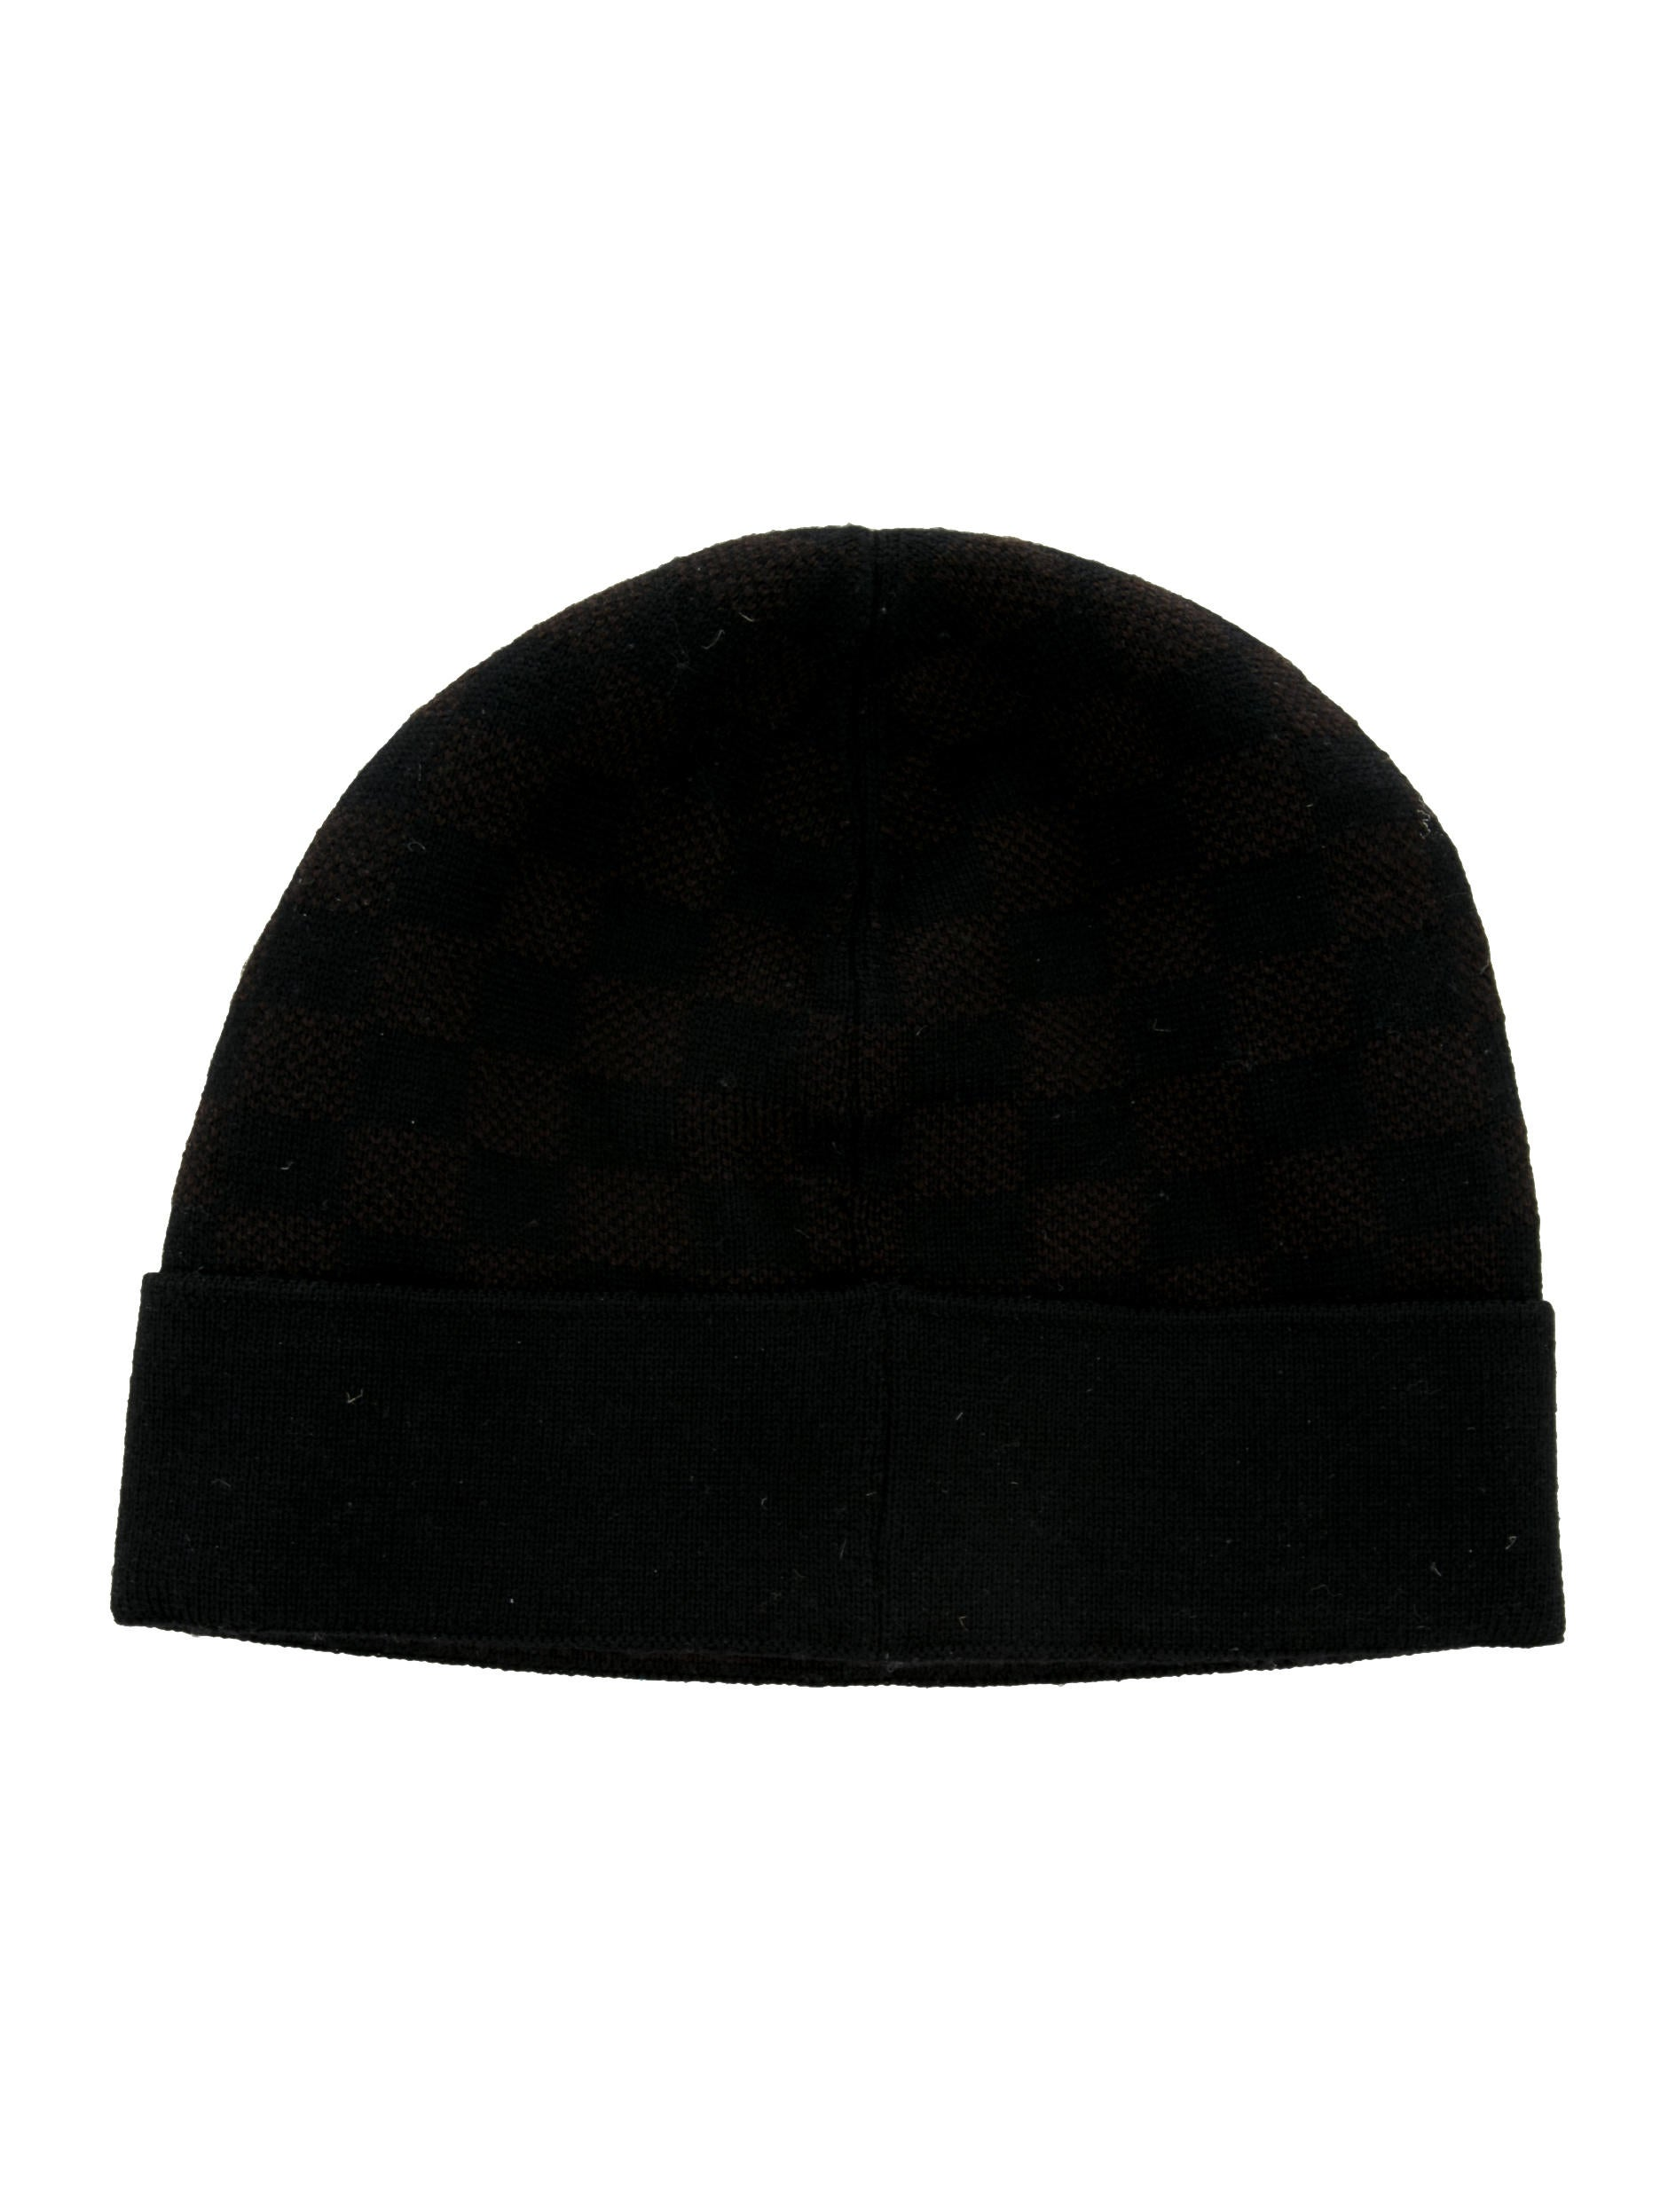 23565394707 LOUIS VUITTON Wool Petit Damier Hat NM Graphite 157754. Louis Vuitton Petit  Damier Beanie - Accessories - LOU134373